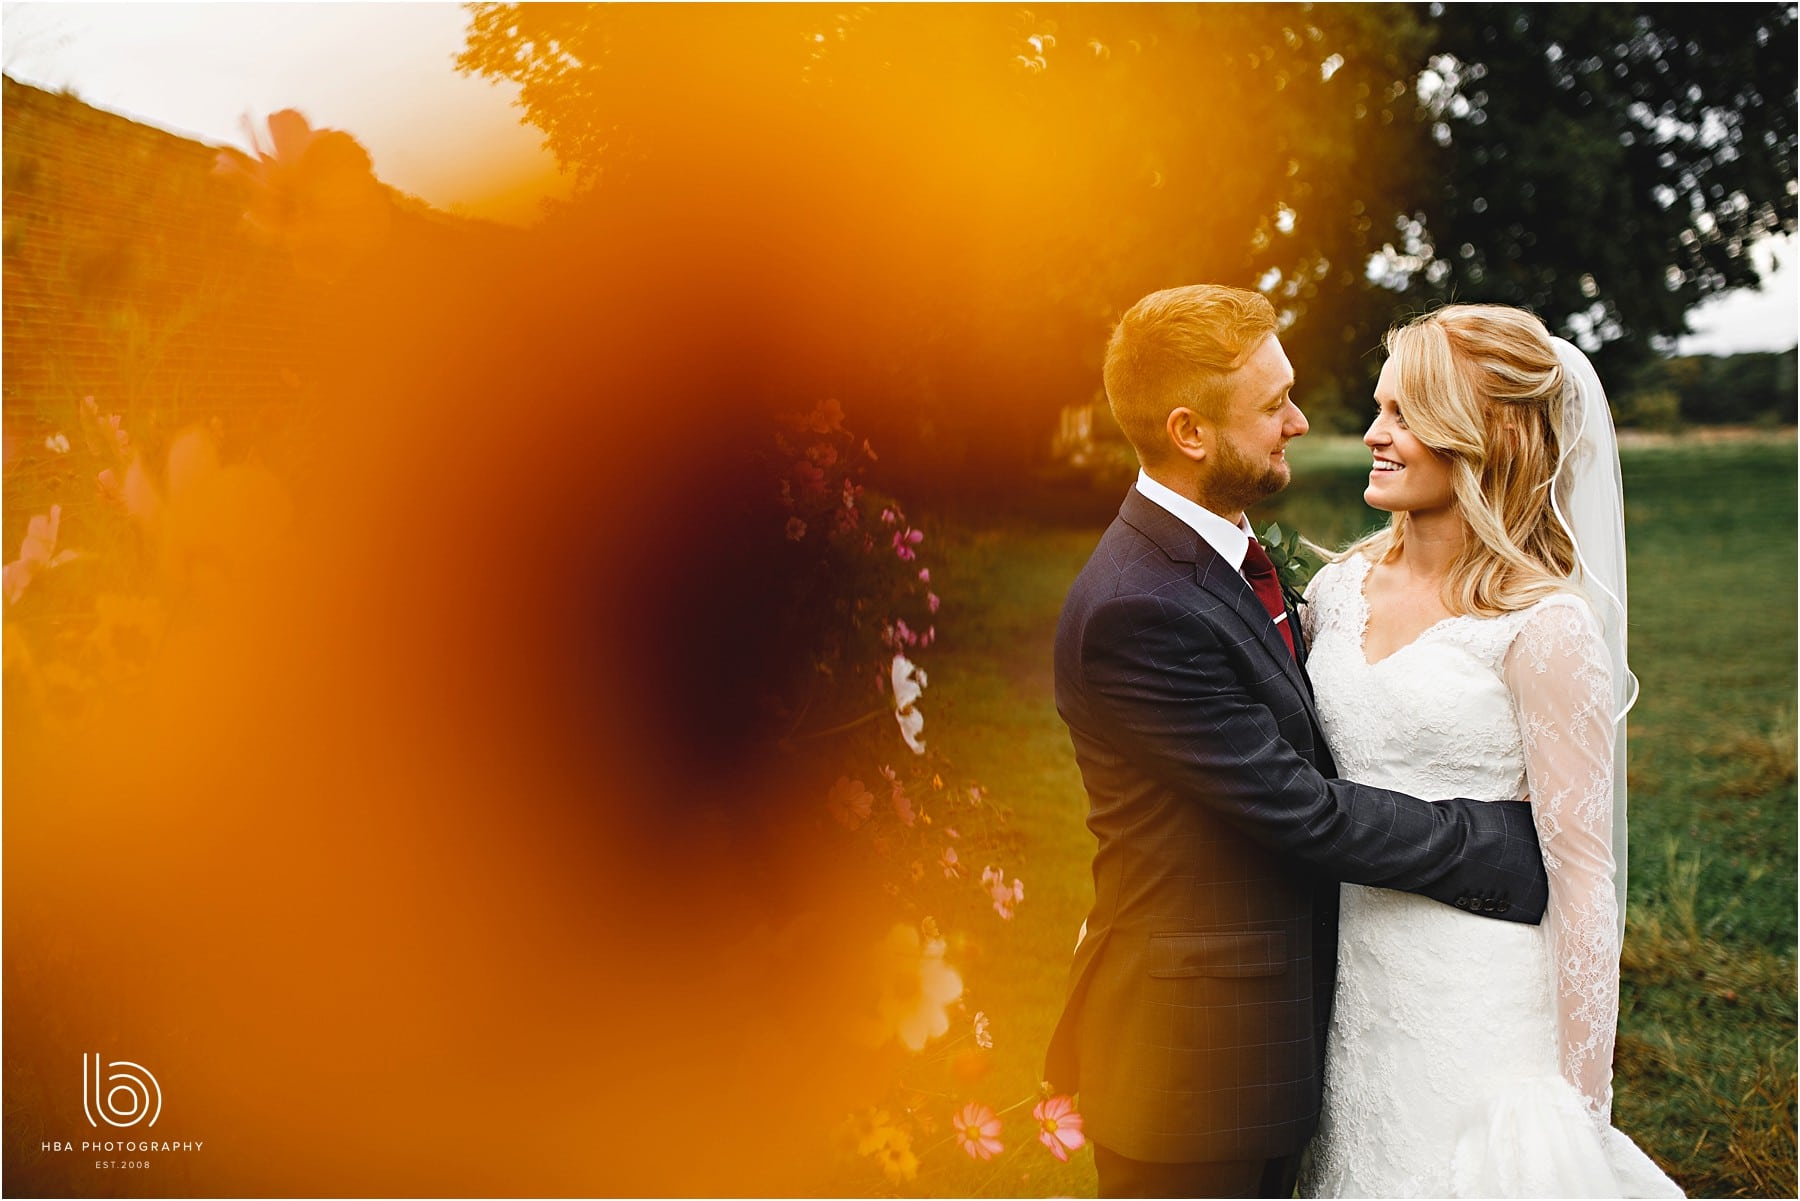 the bride and groom at Calke Abbey stood in orange flowers